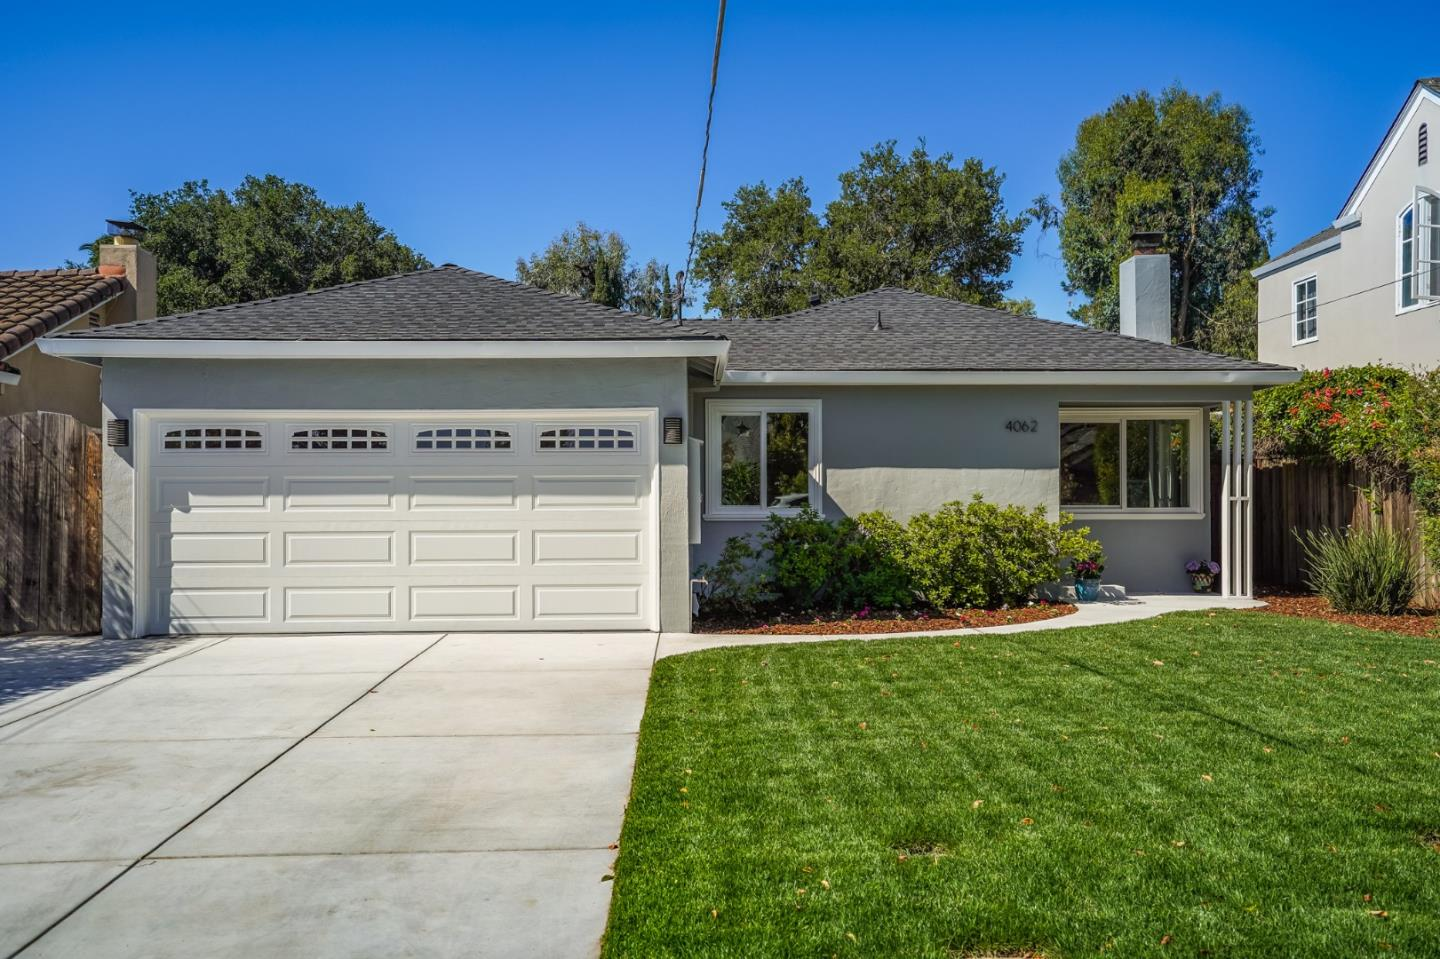 Detail Gallery Image 1 of 1 For 4062 2nd St, Palo Alto,  CA 94306 - 3 Beds | 2 Baths